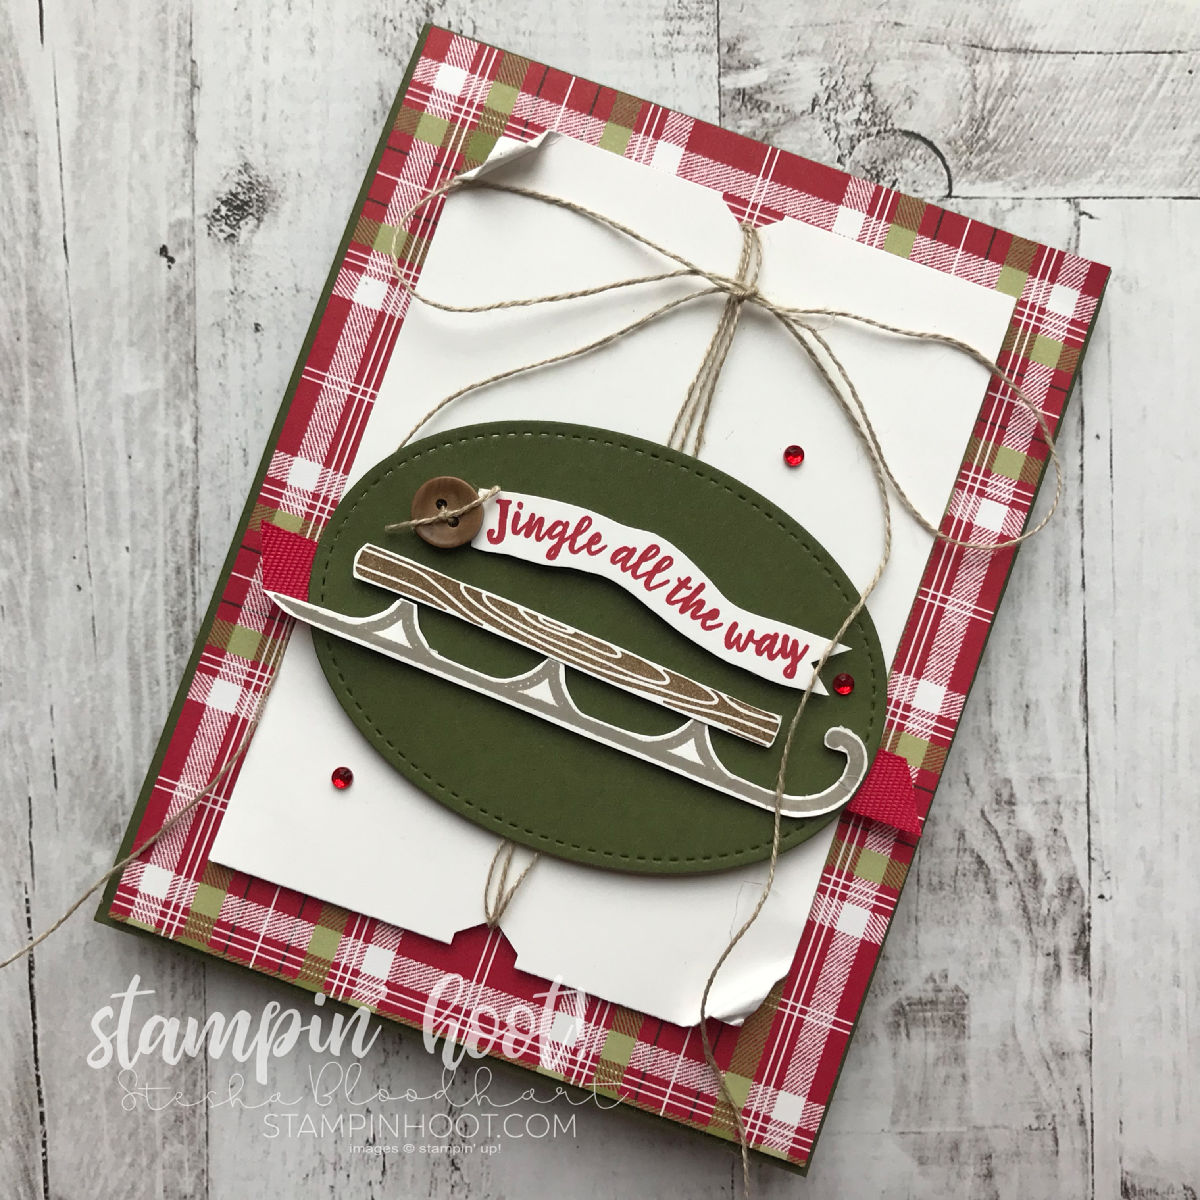 Alpine Adventure Stamp Set by Stampin' Up! Stamp Review Crew. Card created by Stesha Bloodhart, Stampin' Hoot!